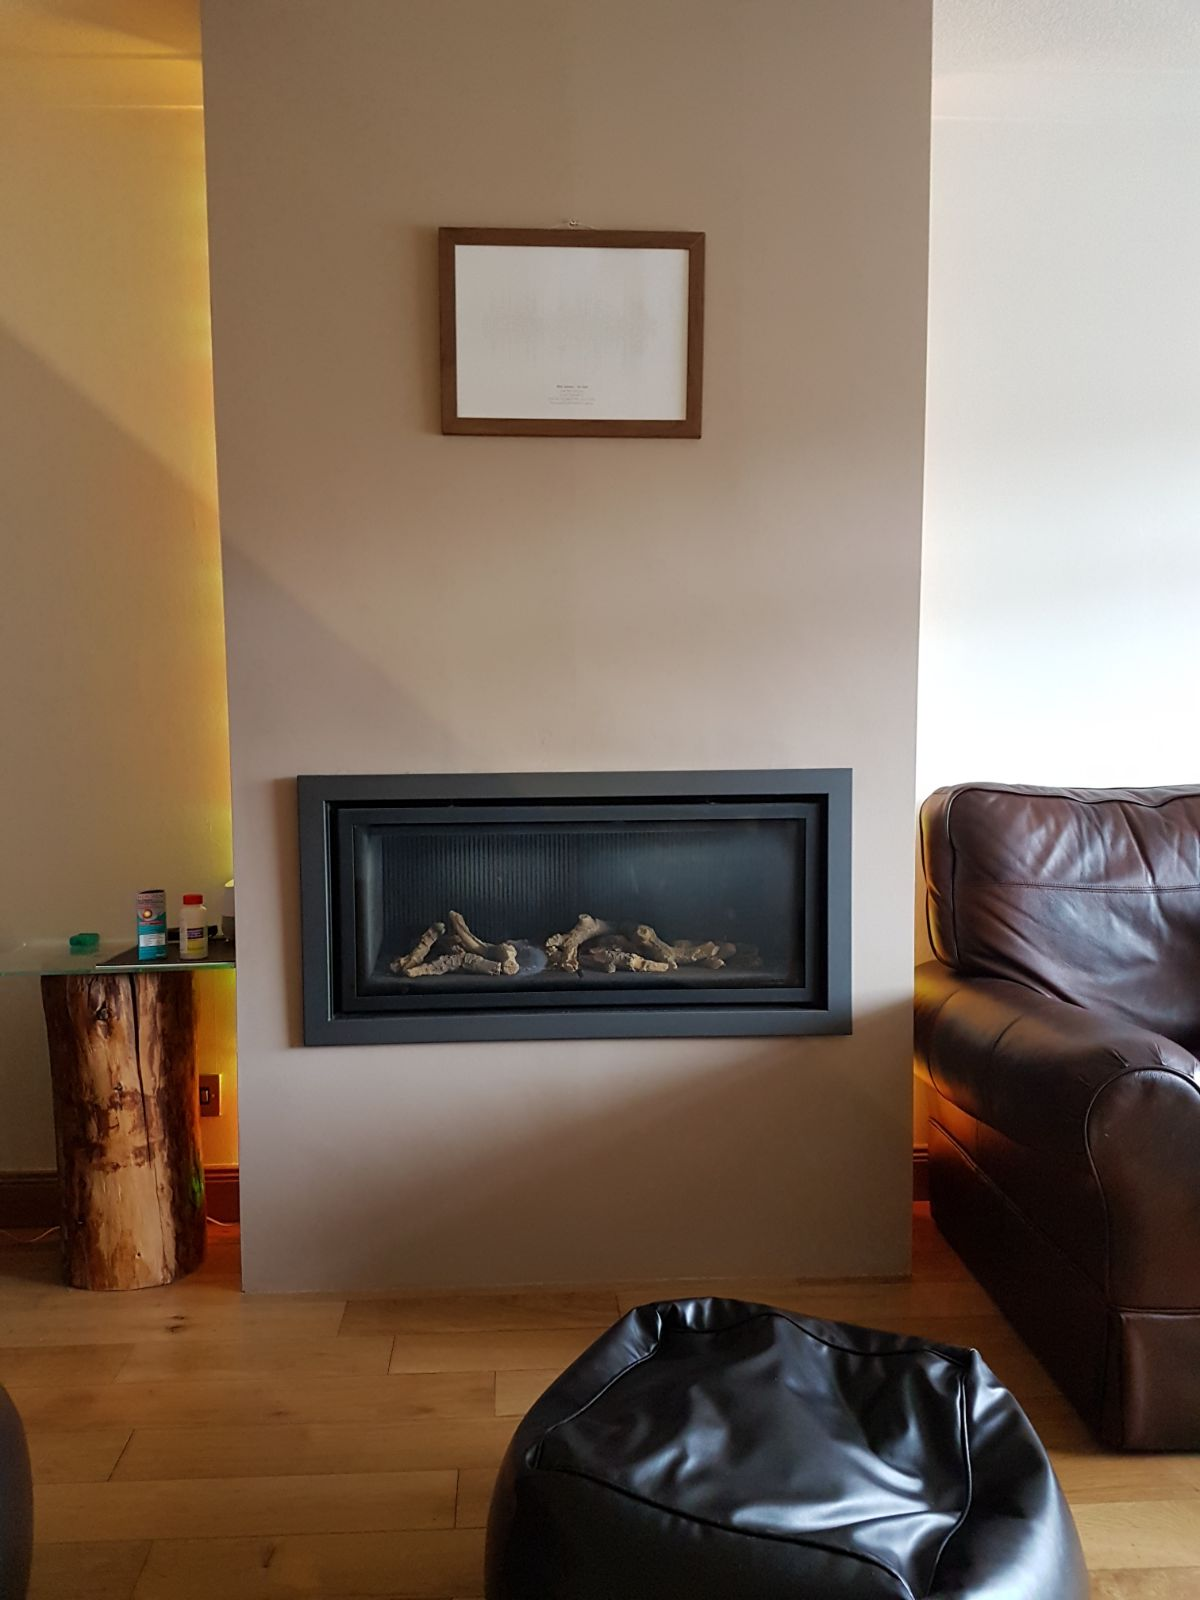 Will There Be A Problem Mounting Tv Above Gas Fire On The Wall Diynot Forums